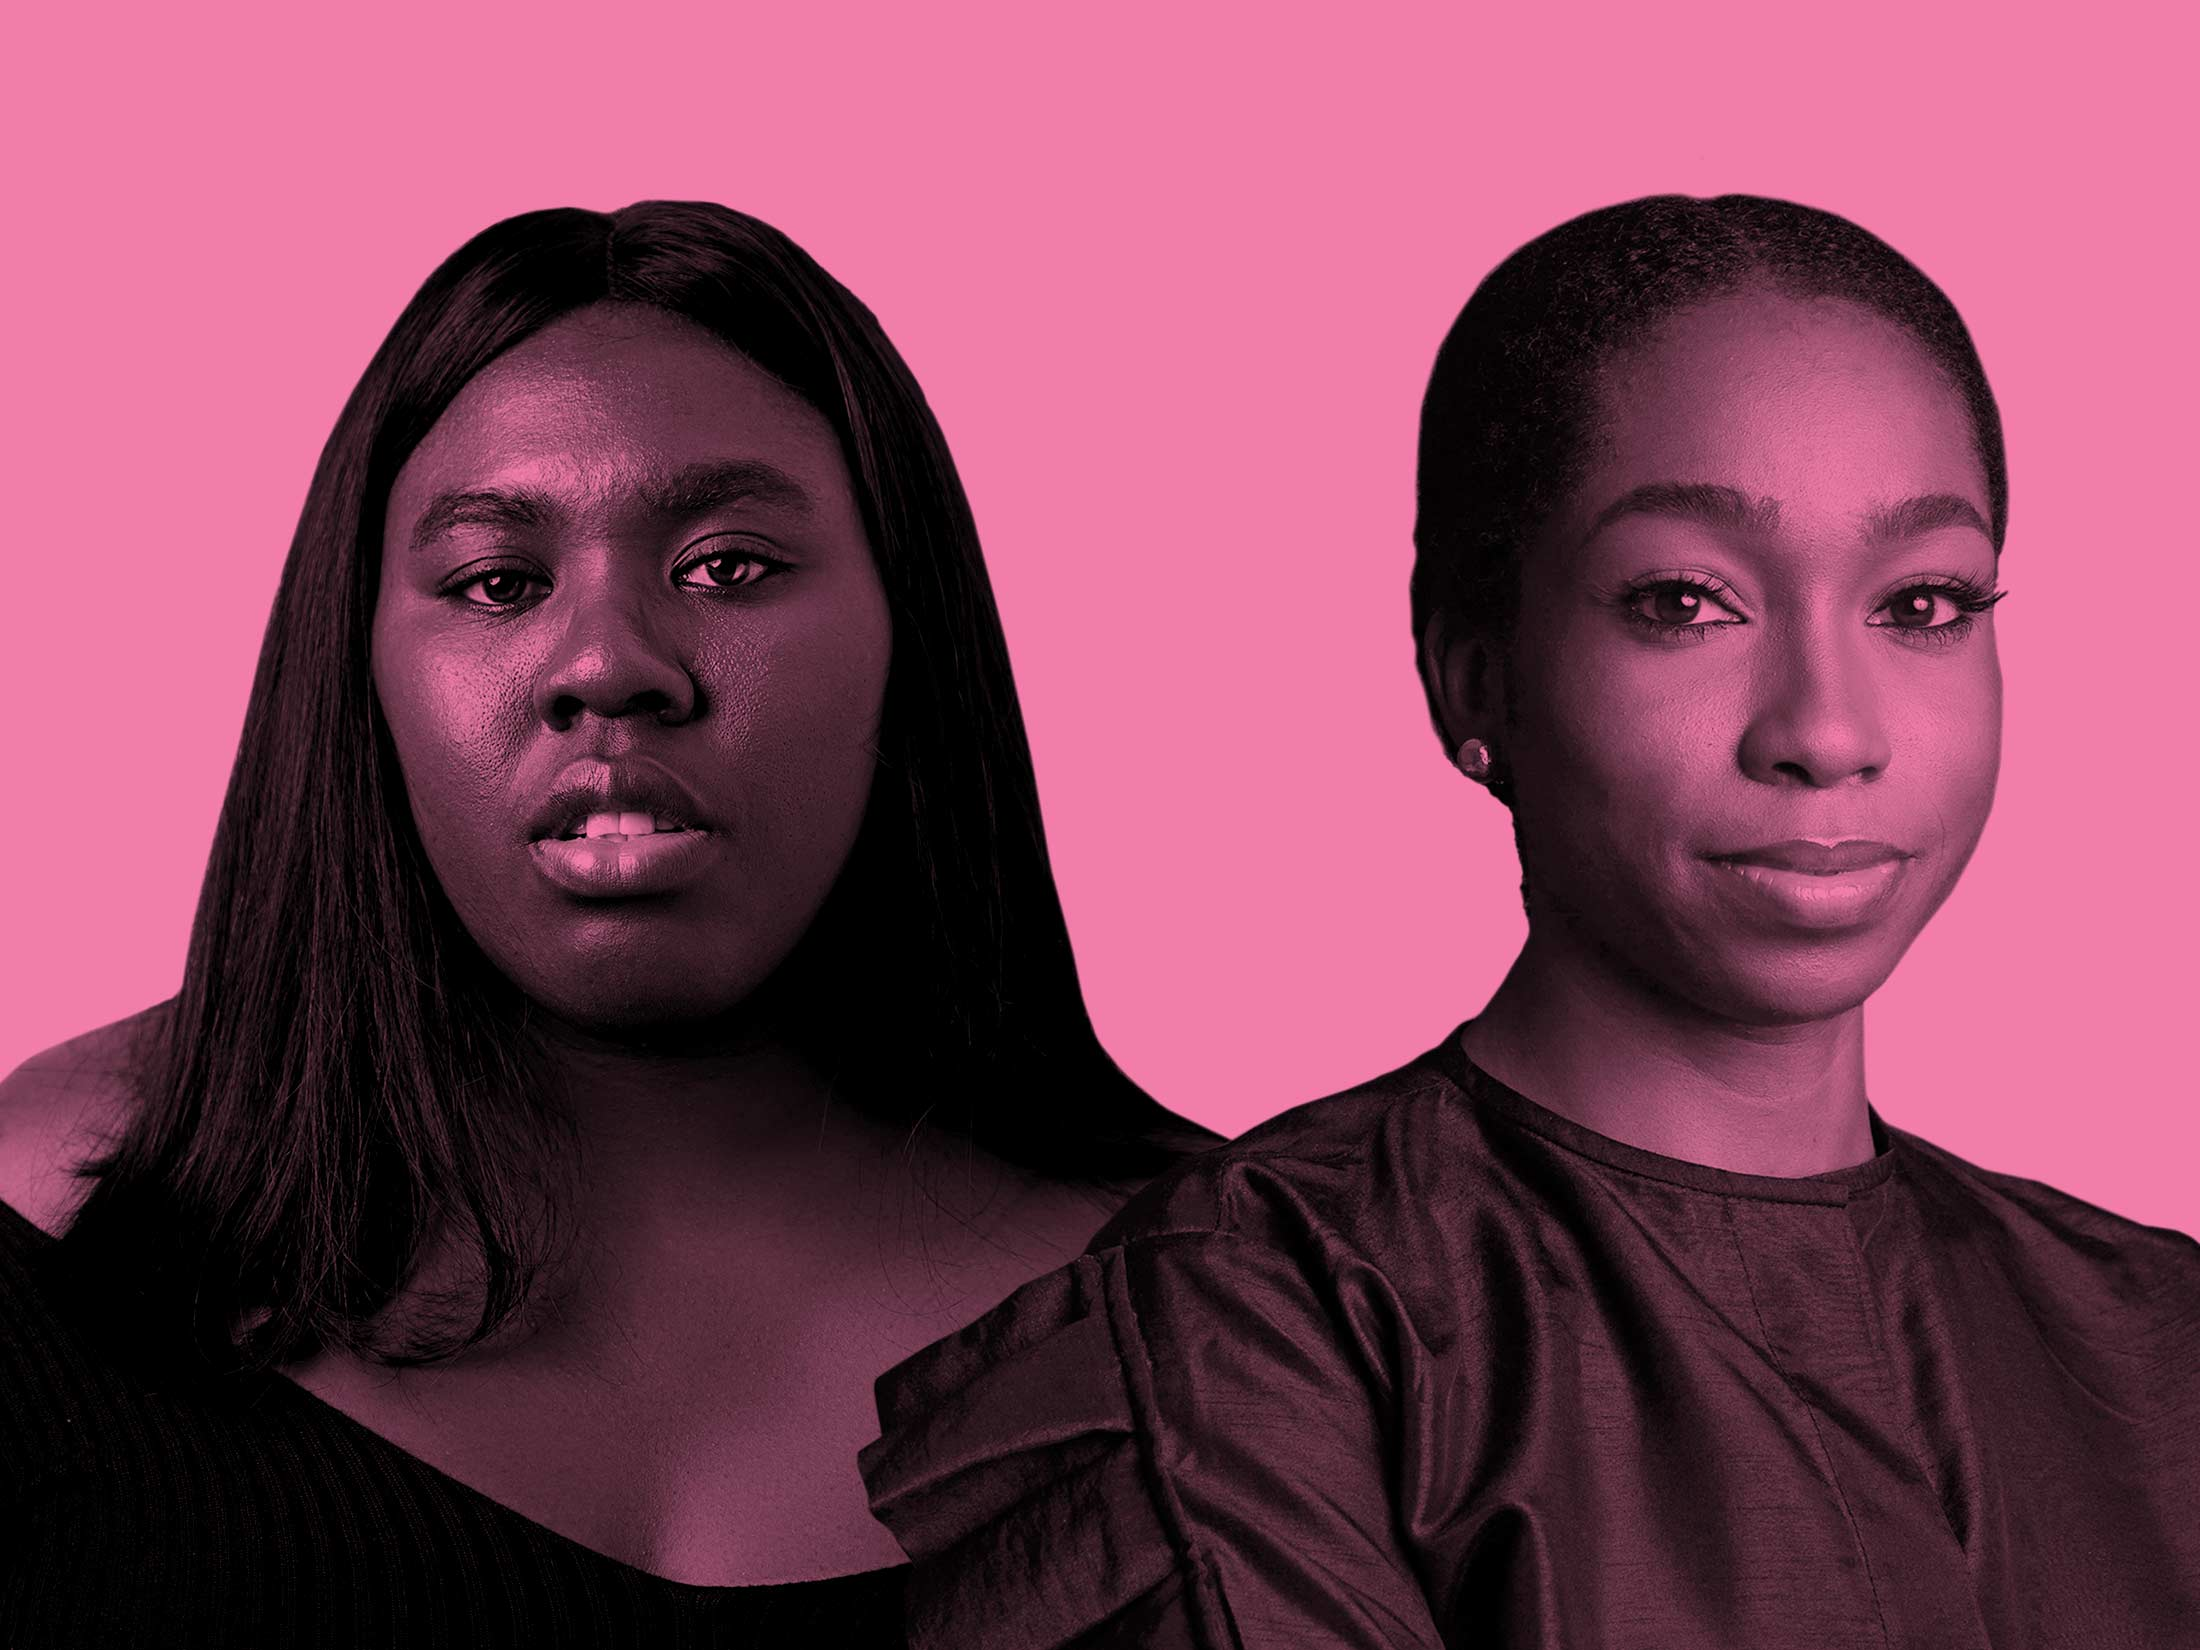 [WATCH] The Bloomberg 50 List of the Most Influential People in 2020 Features 2 African Women in Fintech & Crypto